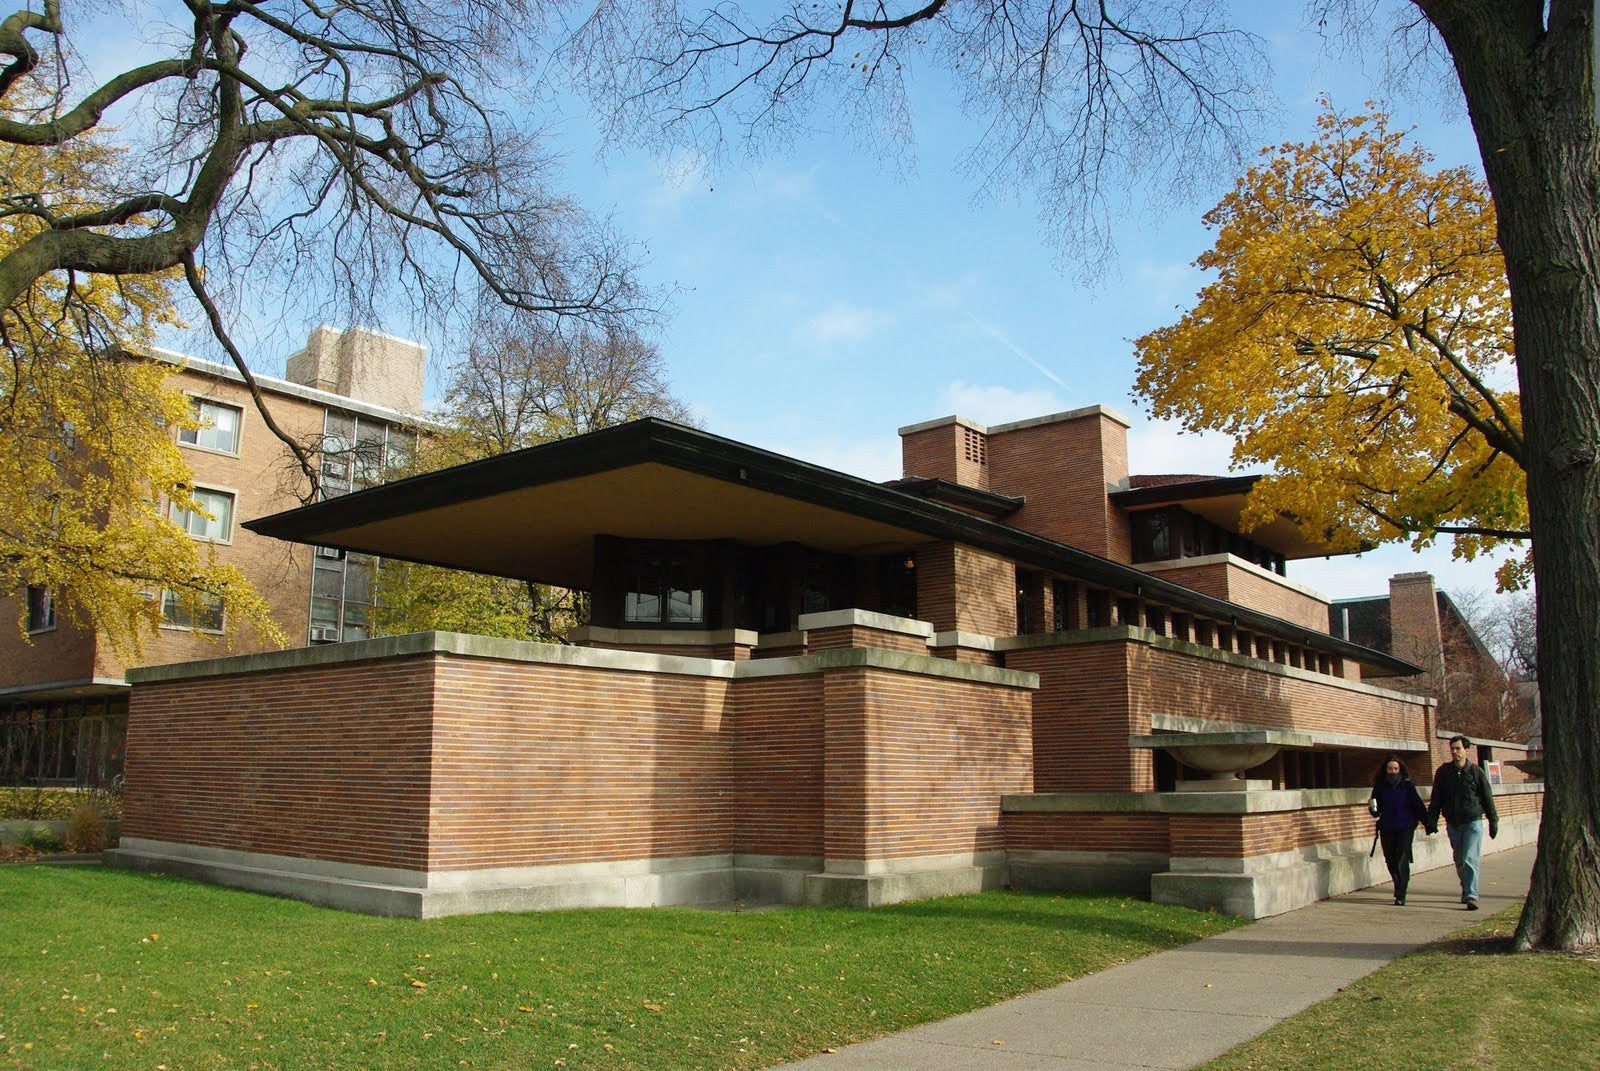 Frank lloyd wright robie house cad design free cad for Frank lloyd wright house design